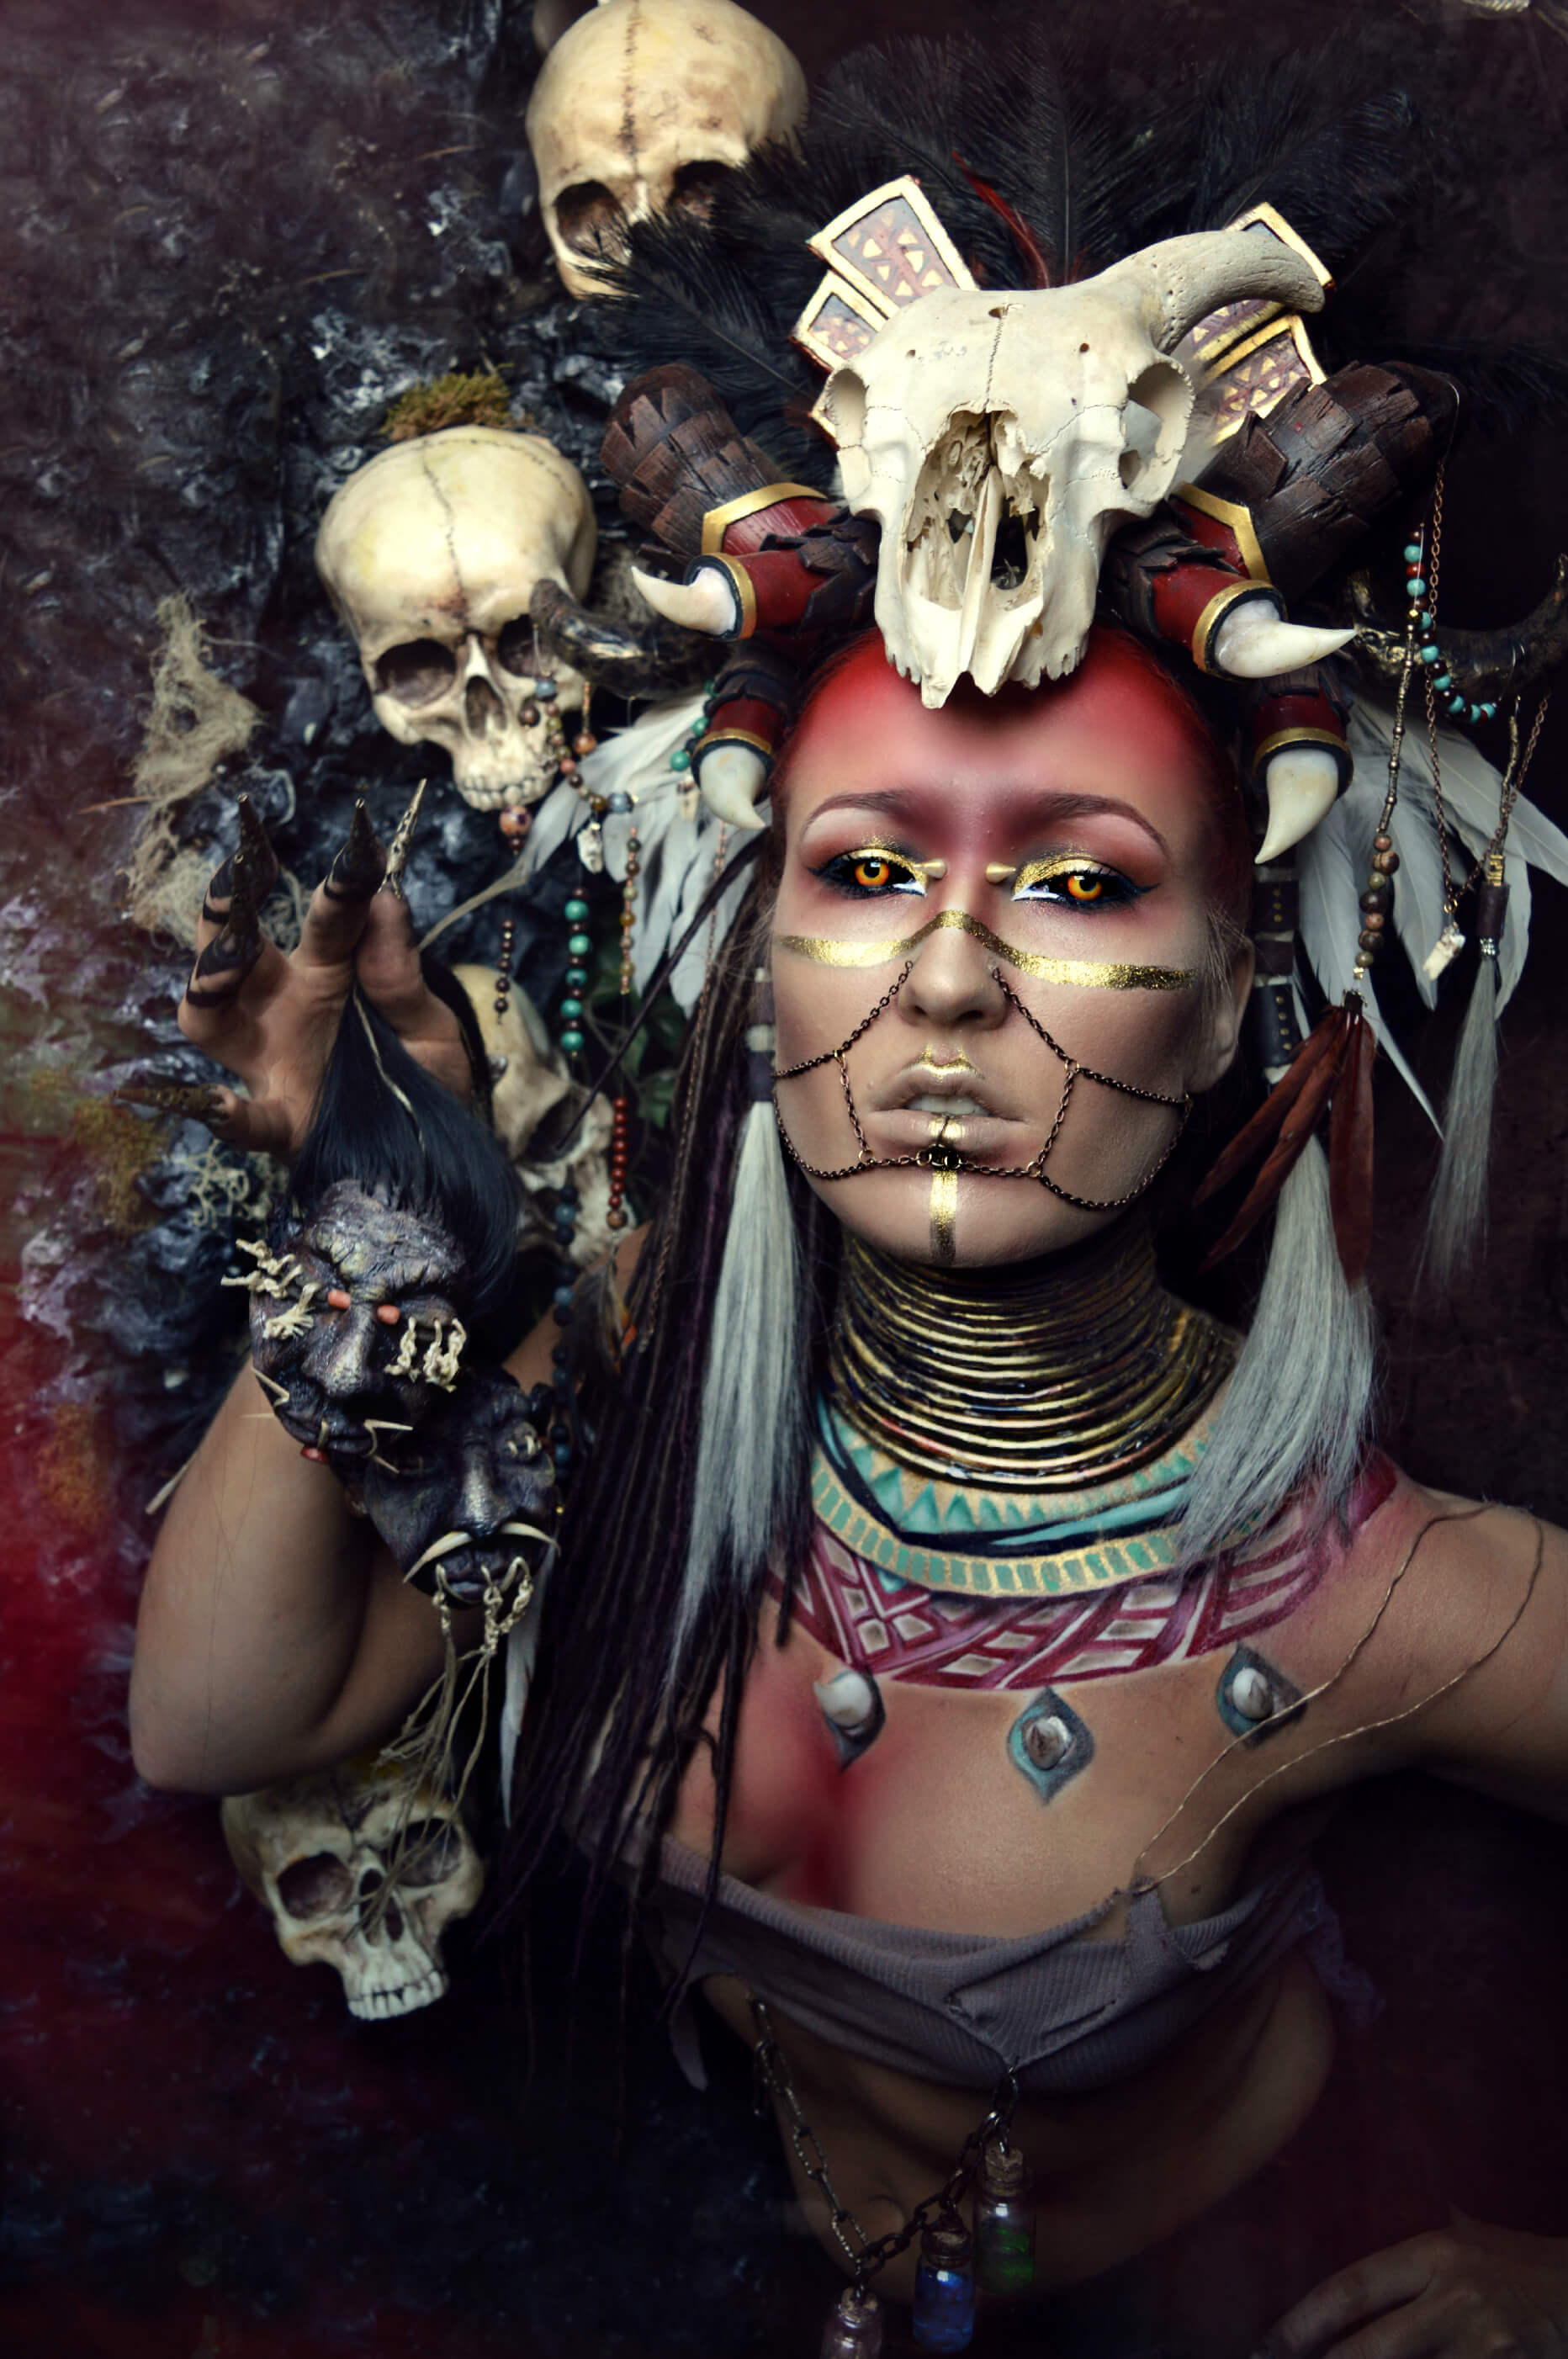 Voodoo make up and styling by candy makeup artist